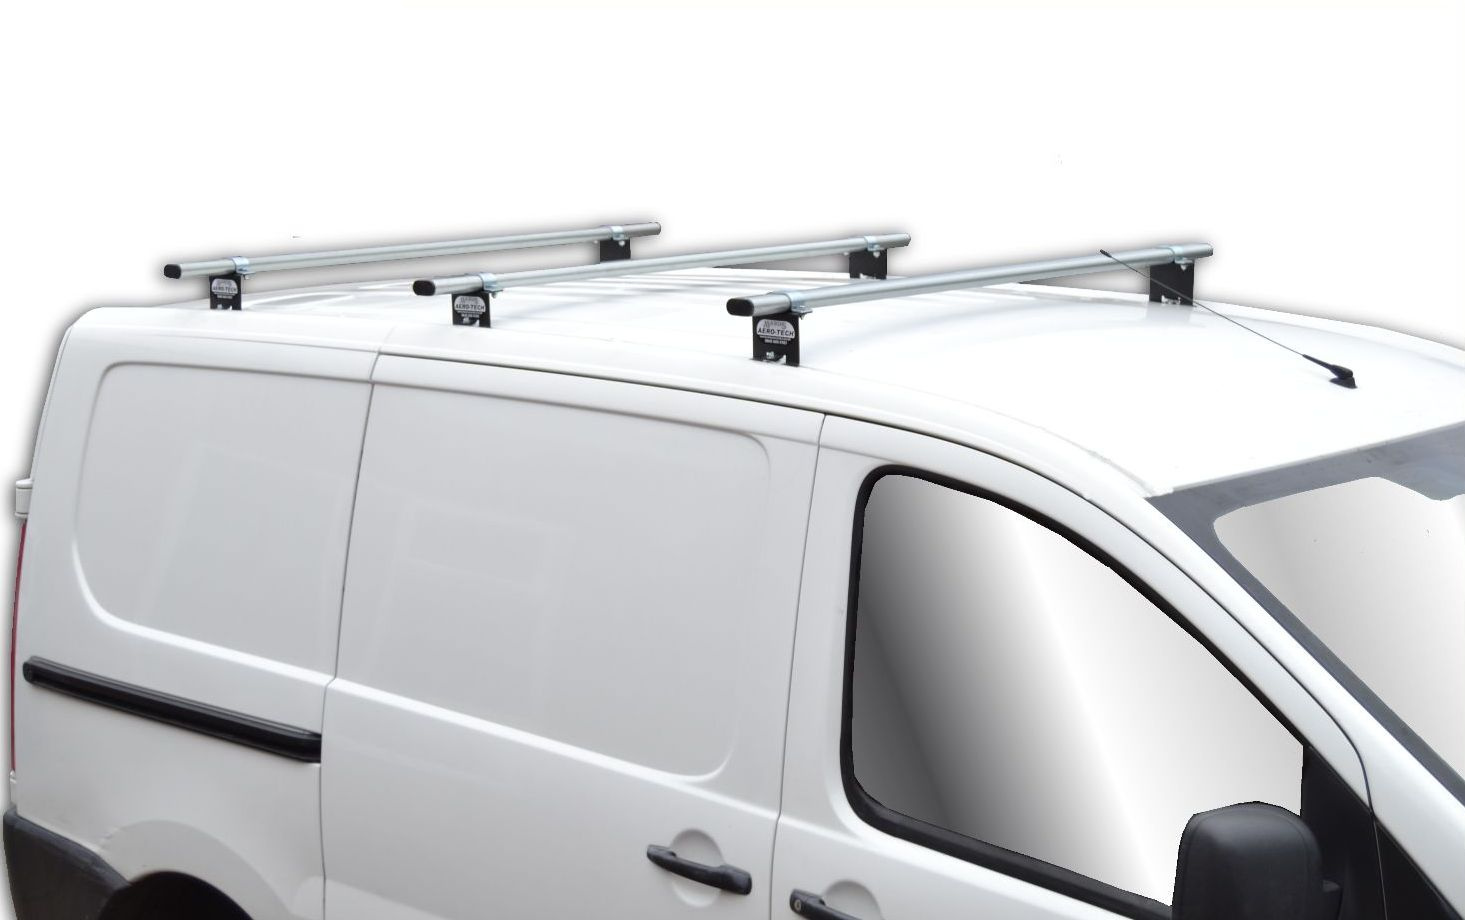 Citroen Dispatch Aero Tech 3 Bar Roof Rack System At113